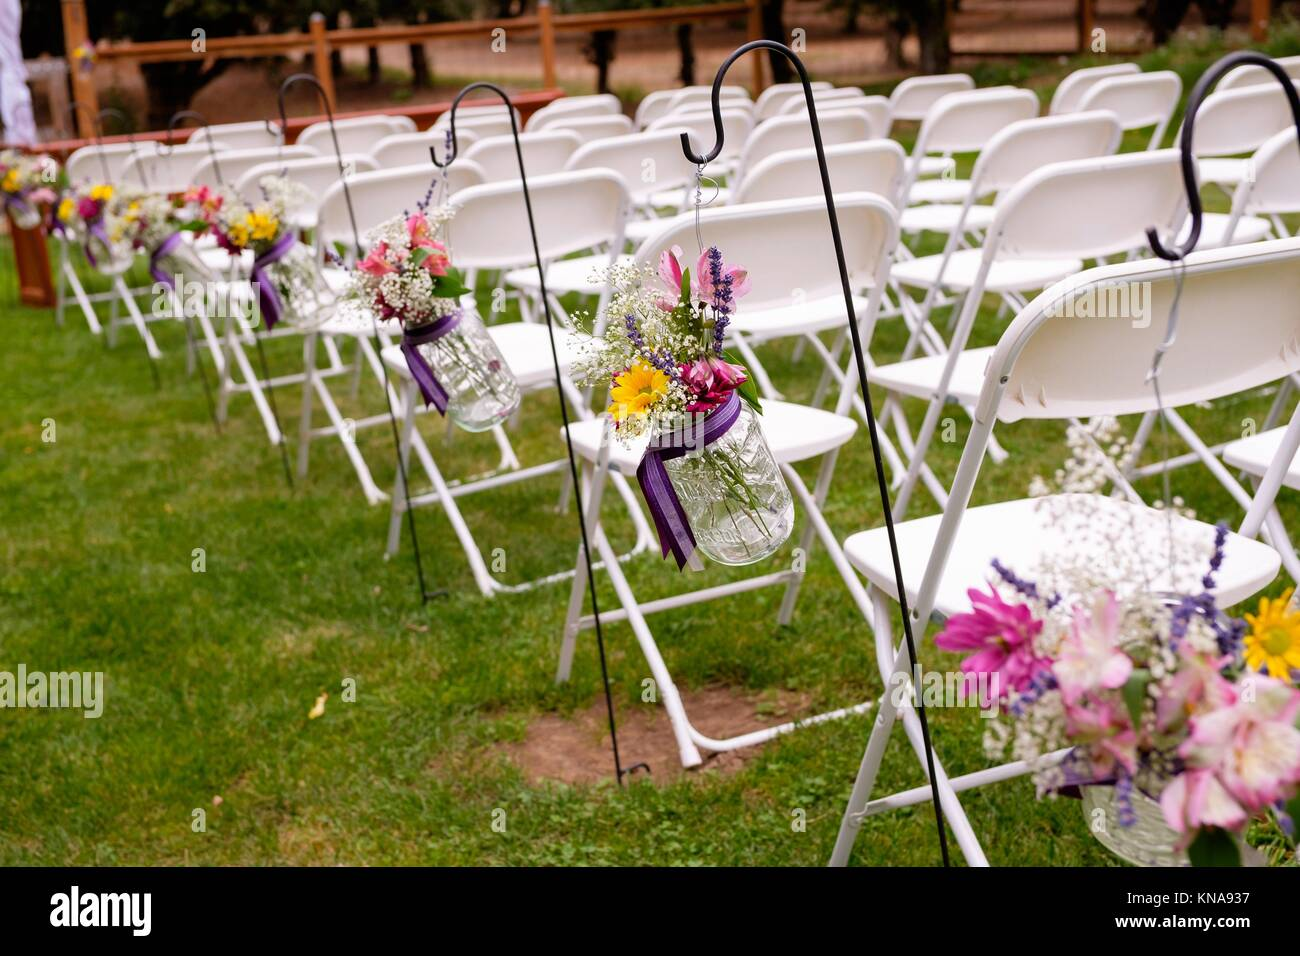 Ceremony Seating With White Chairs And Flowers At An Outdoor Wedding Stock Photo Alamy